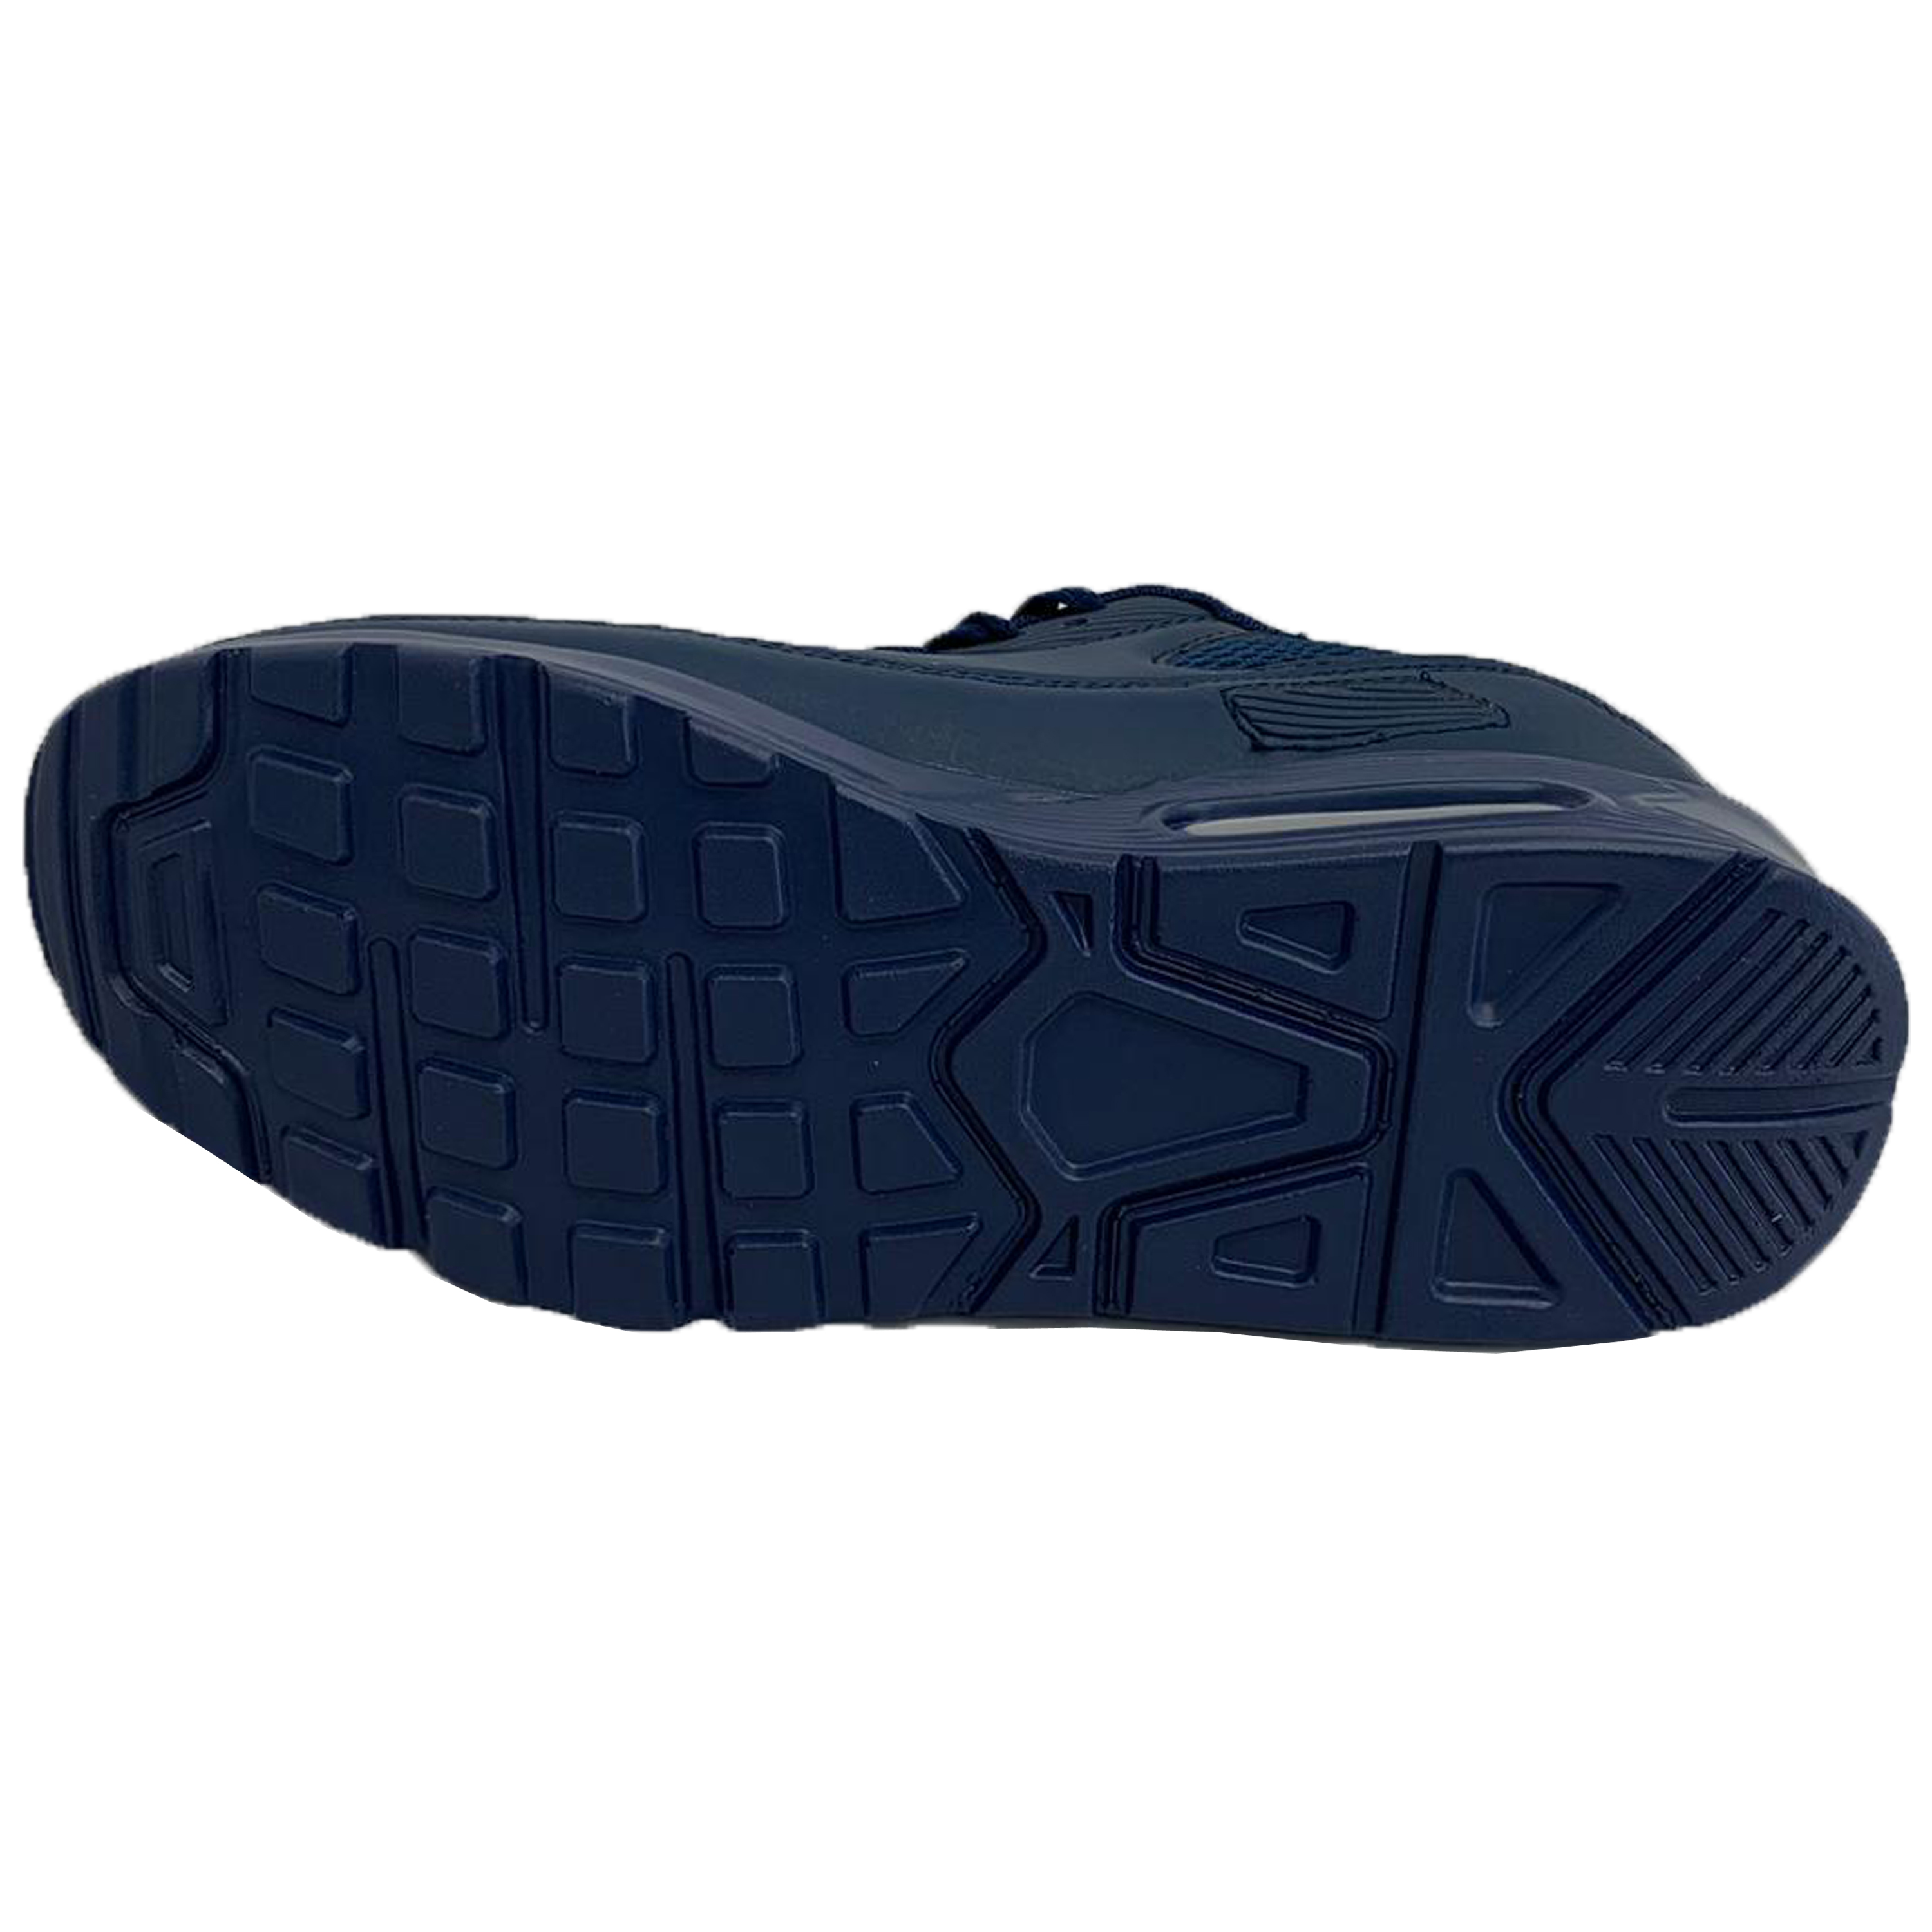 Mens-Bubble-Trainers-Lace-Up-Running-Shoes-Mesh-Jogging-Sports-Gym-Casual-New thumbnail 15